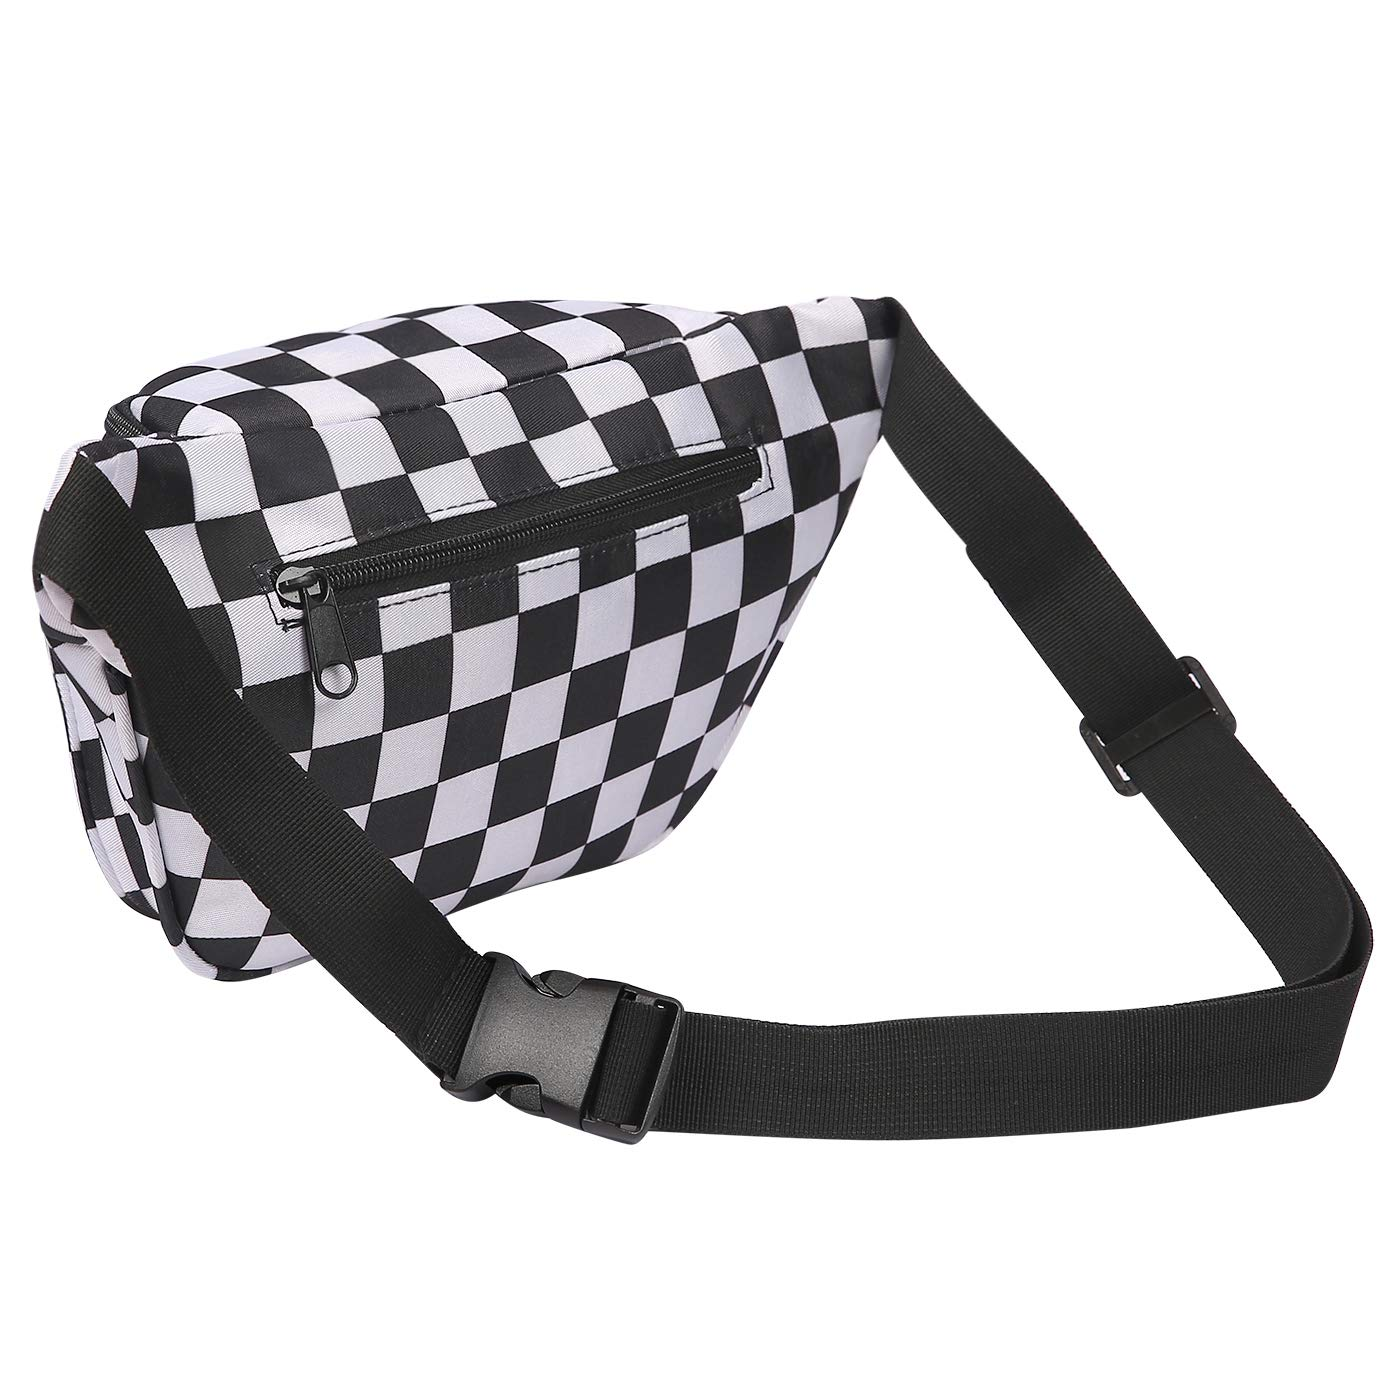 ac727e229f40 HDE Fanny Pack [80's Style] Waist Pack Outdoor Travel Crossbody Hip Bag  (Black and White Checkered)